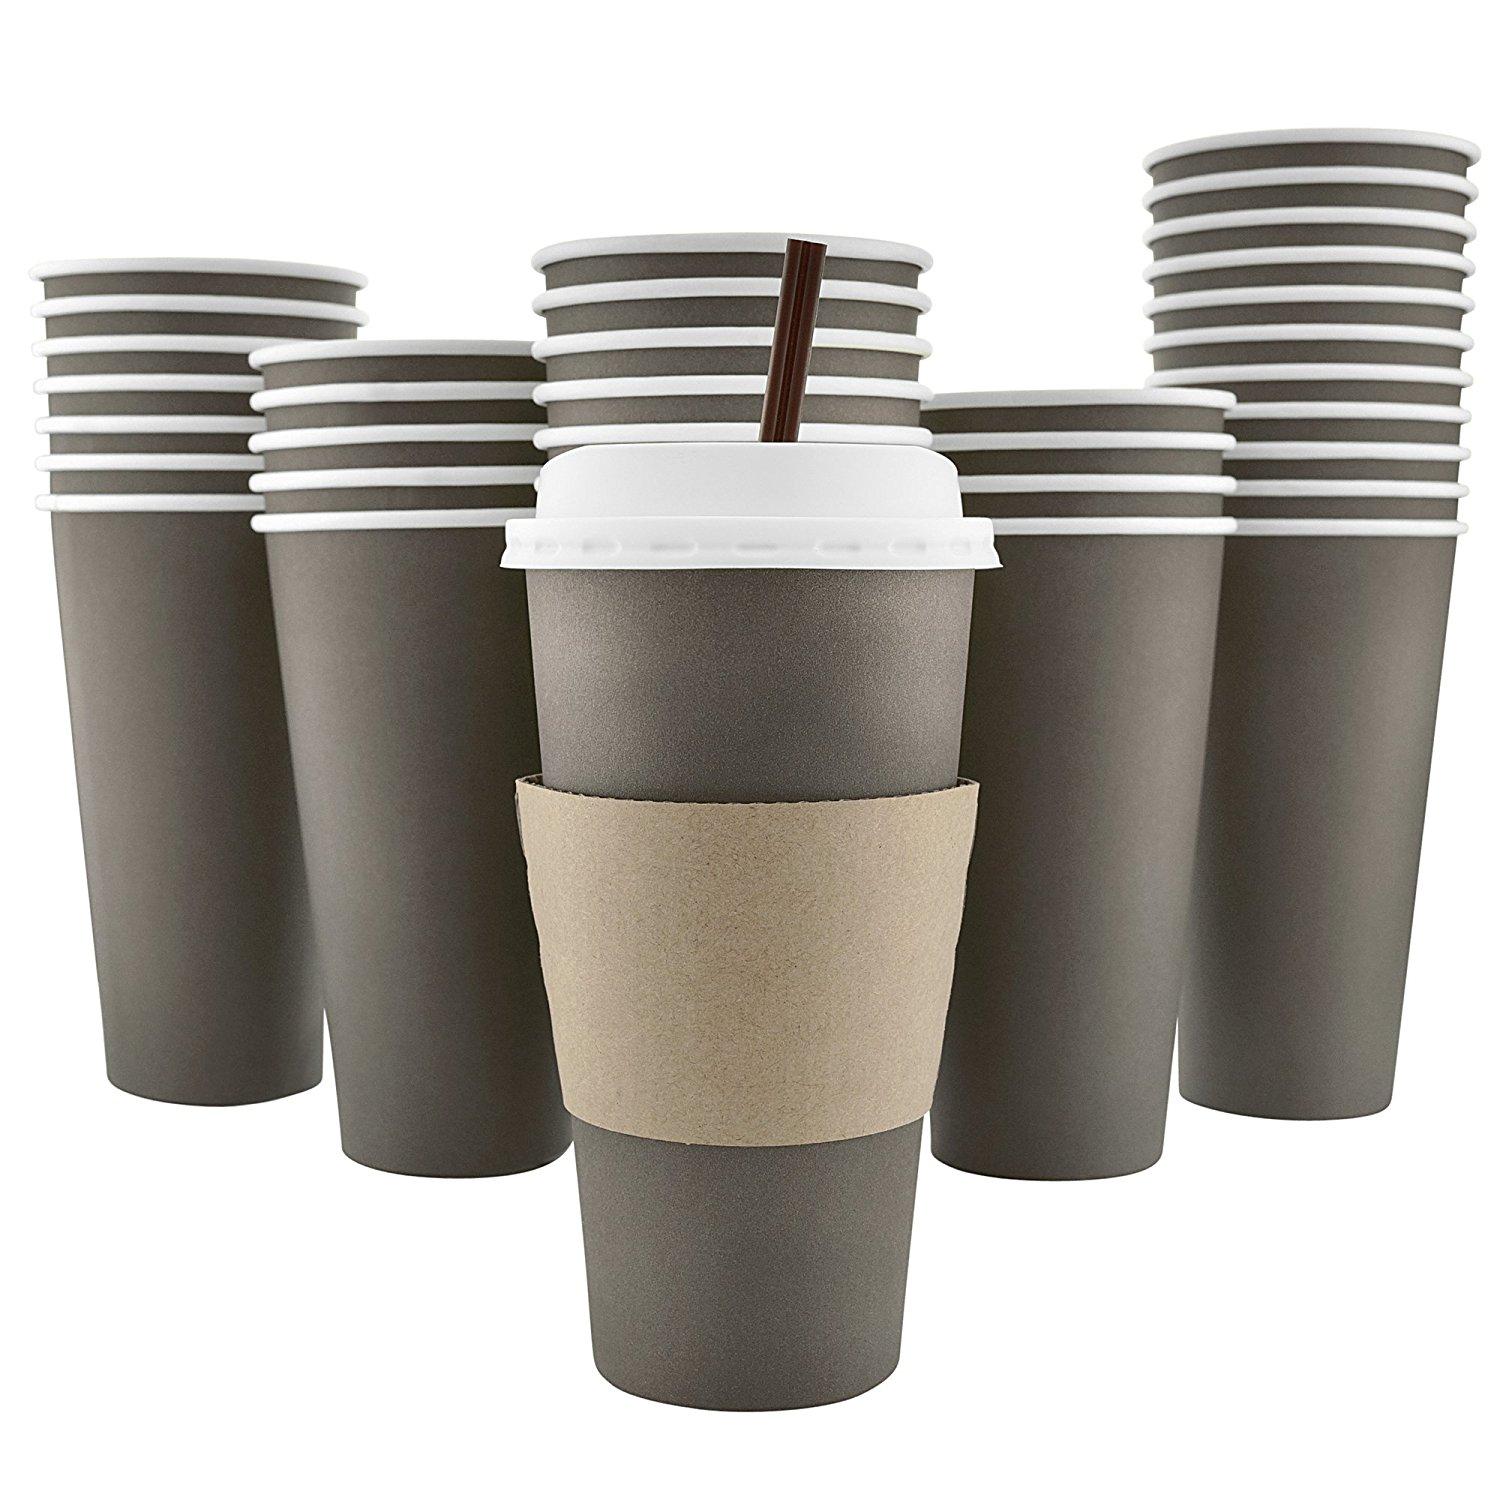 100 Pack 20 Oz [8, 12, 16 Available] Disposable Hot Paper Coffee Cups, Lids, Sleeves, Stirring Straws Mocha... by AckBrands LLC